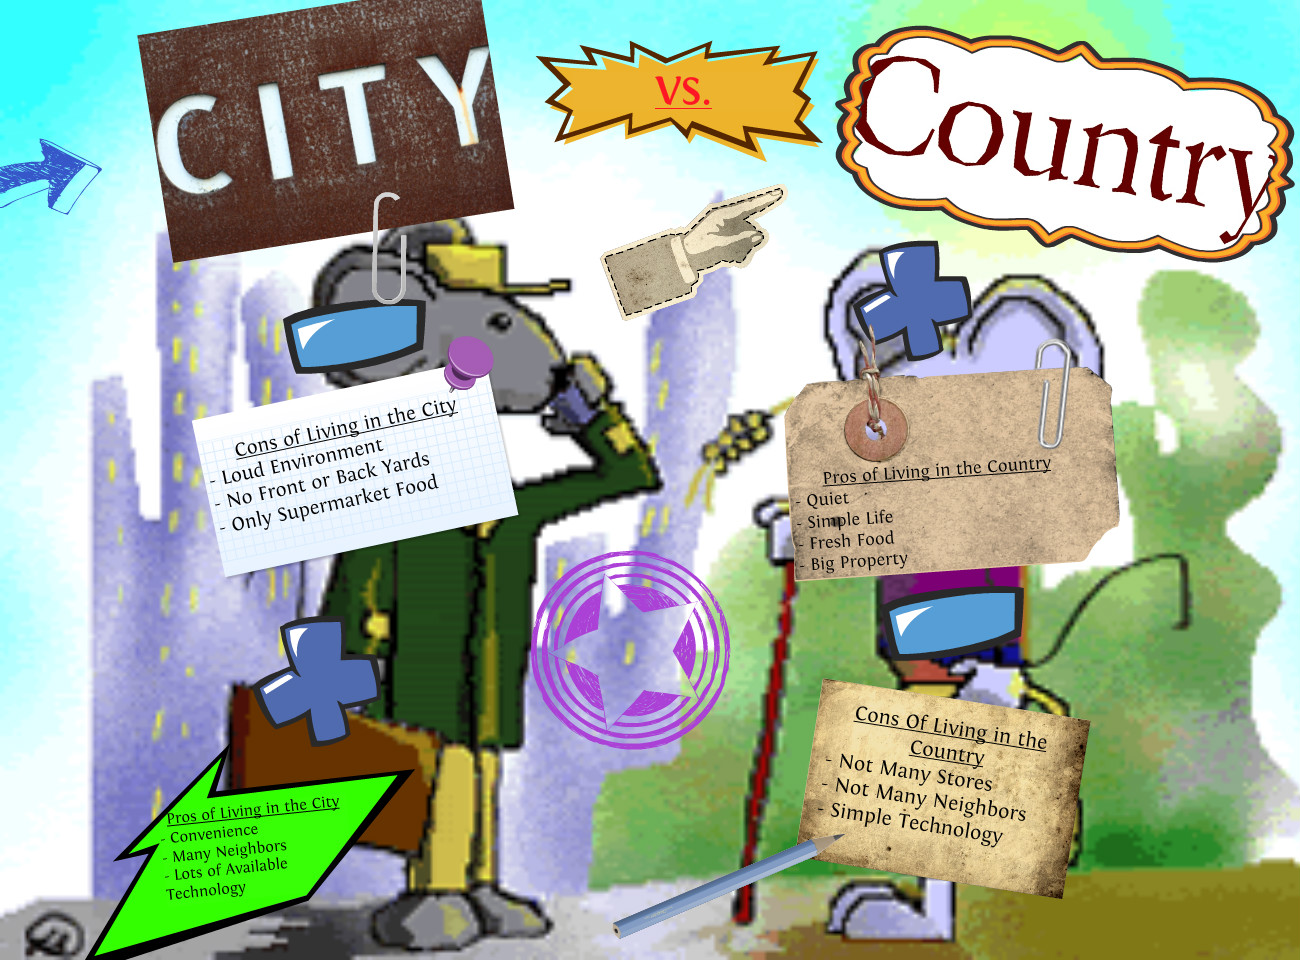 Country life vs city life essay